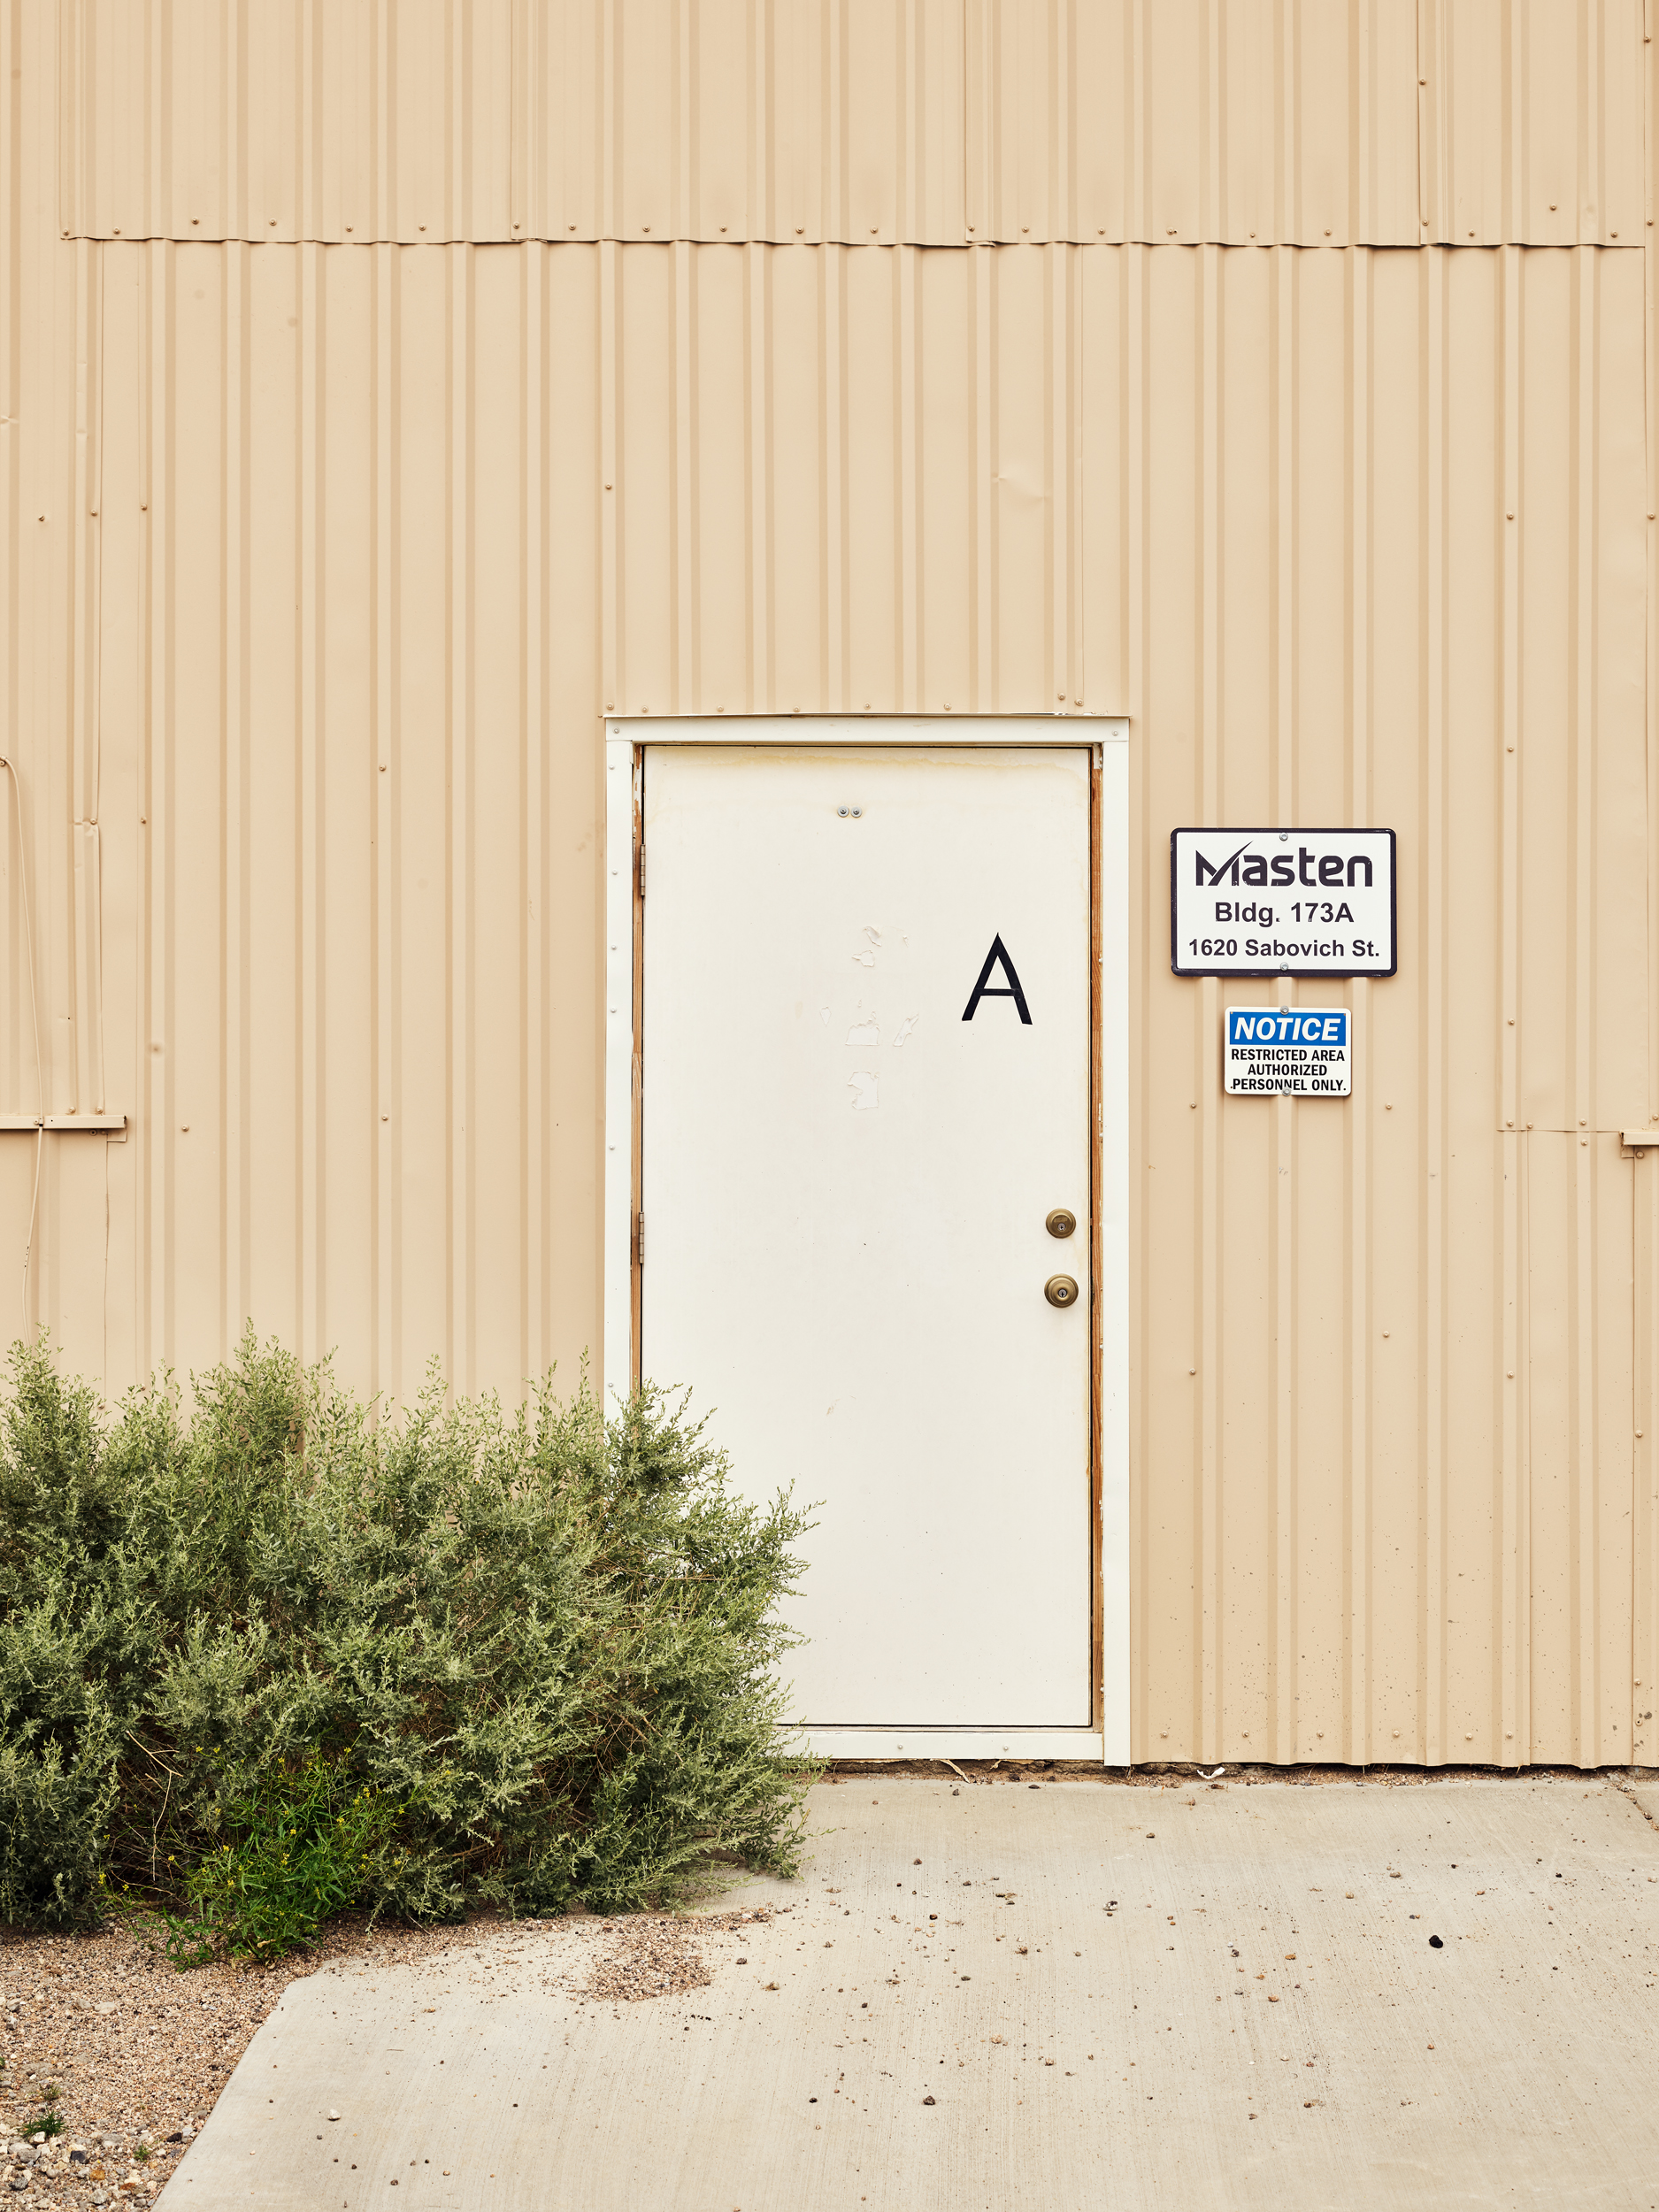 The entrance to Masten's aviary where its rockets are stored